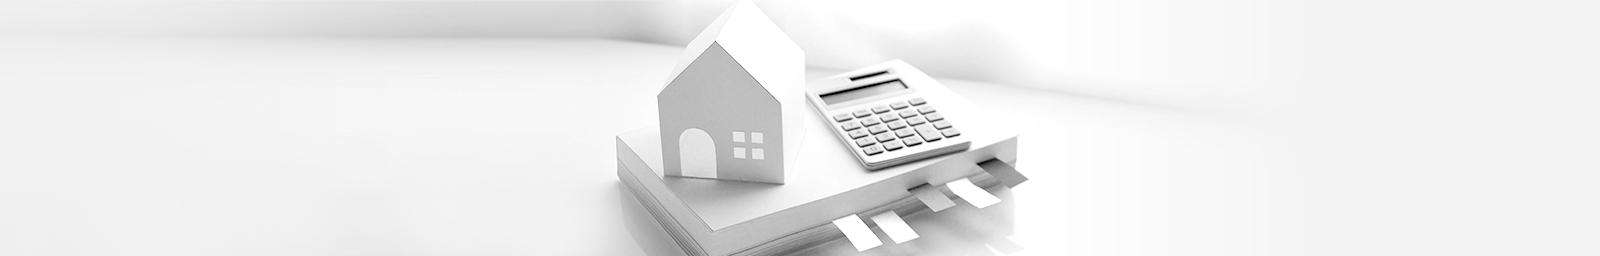 Mortgage Loan Calculator - Hang Seng Bank Mainland China